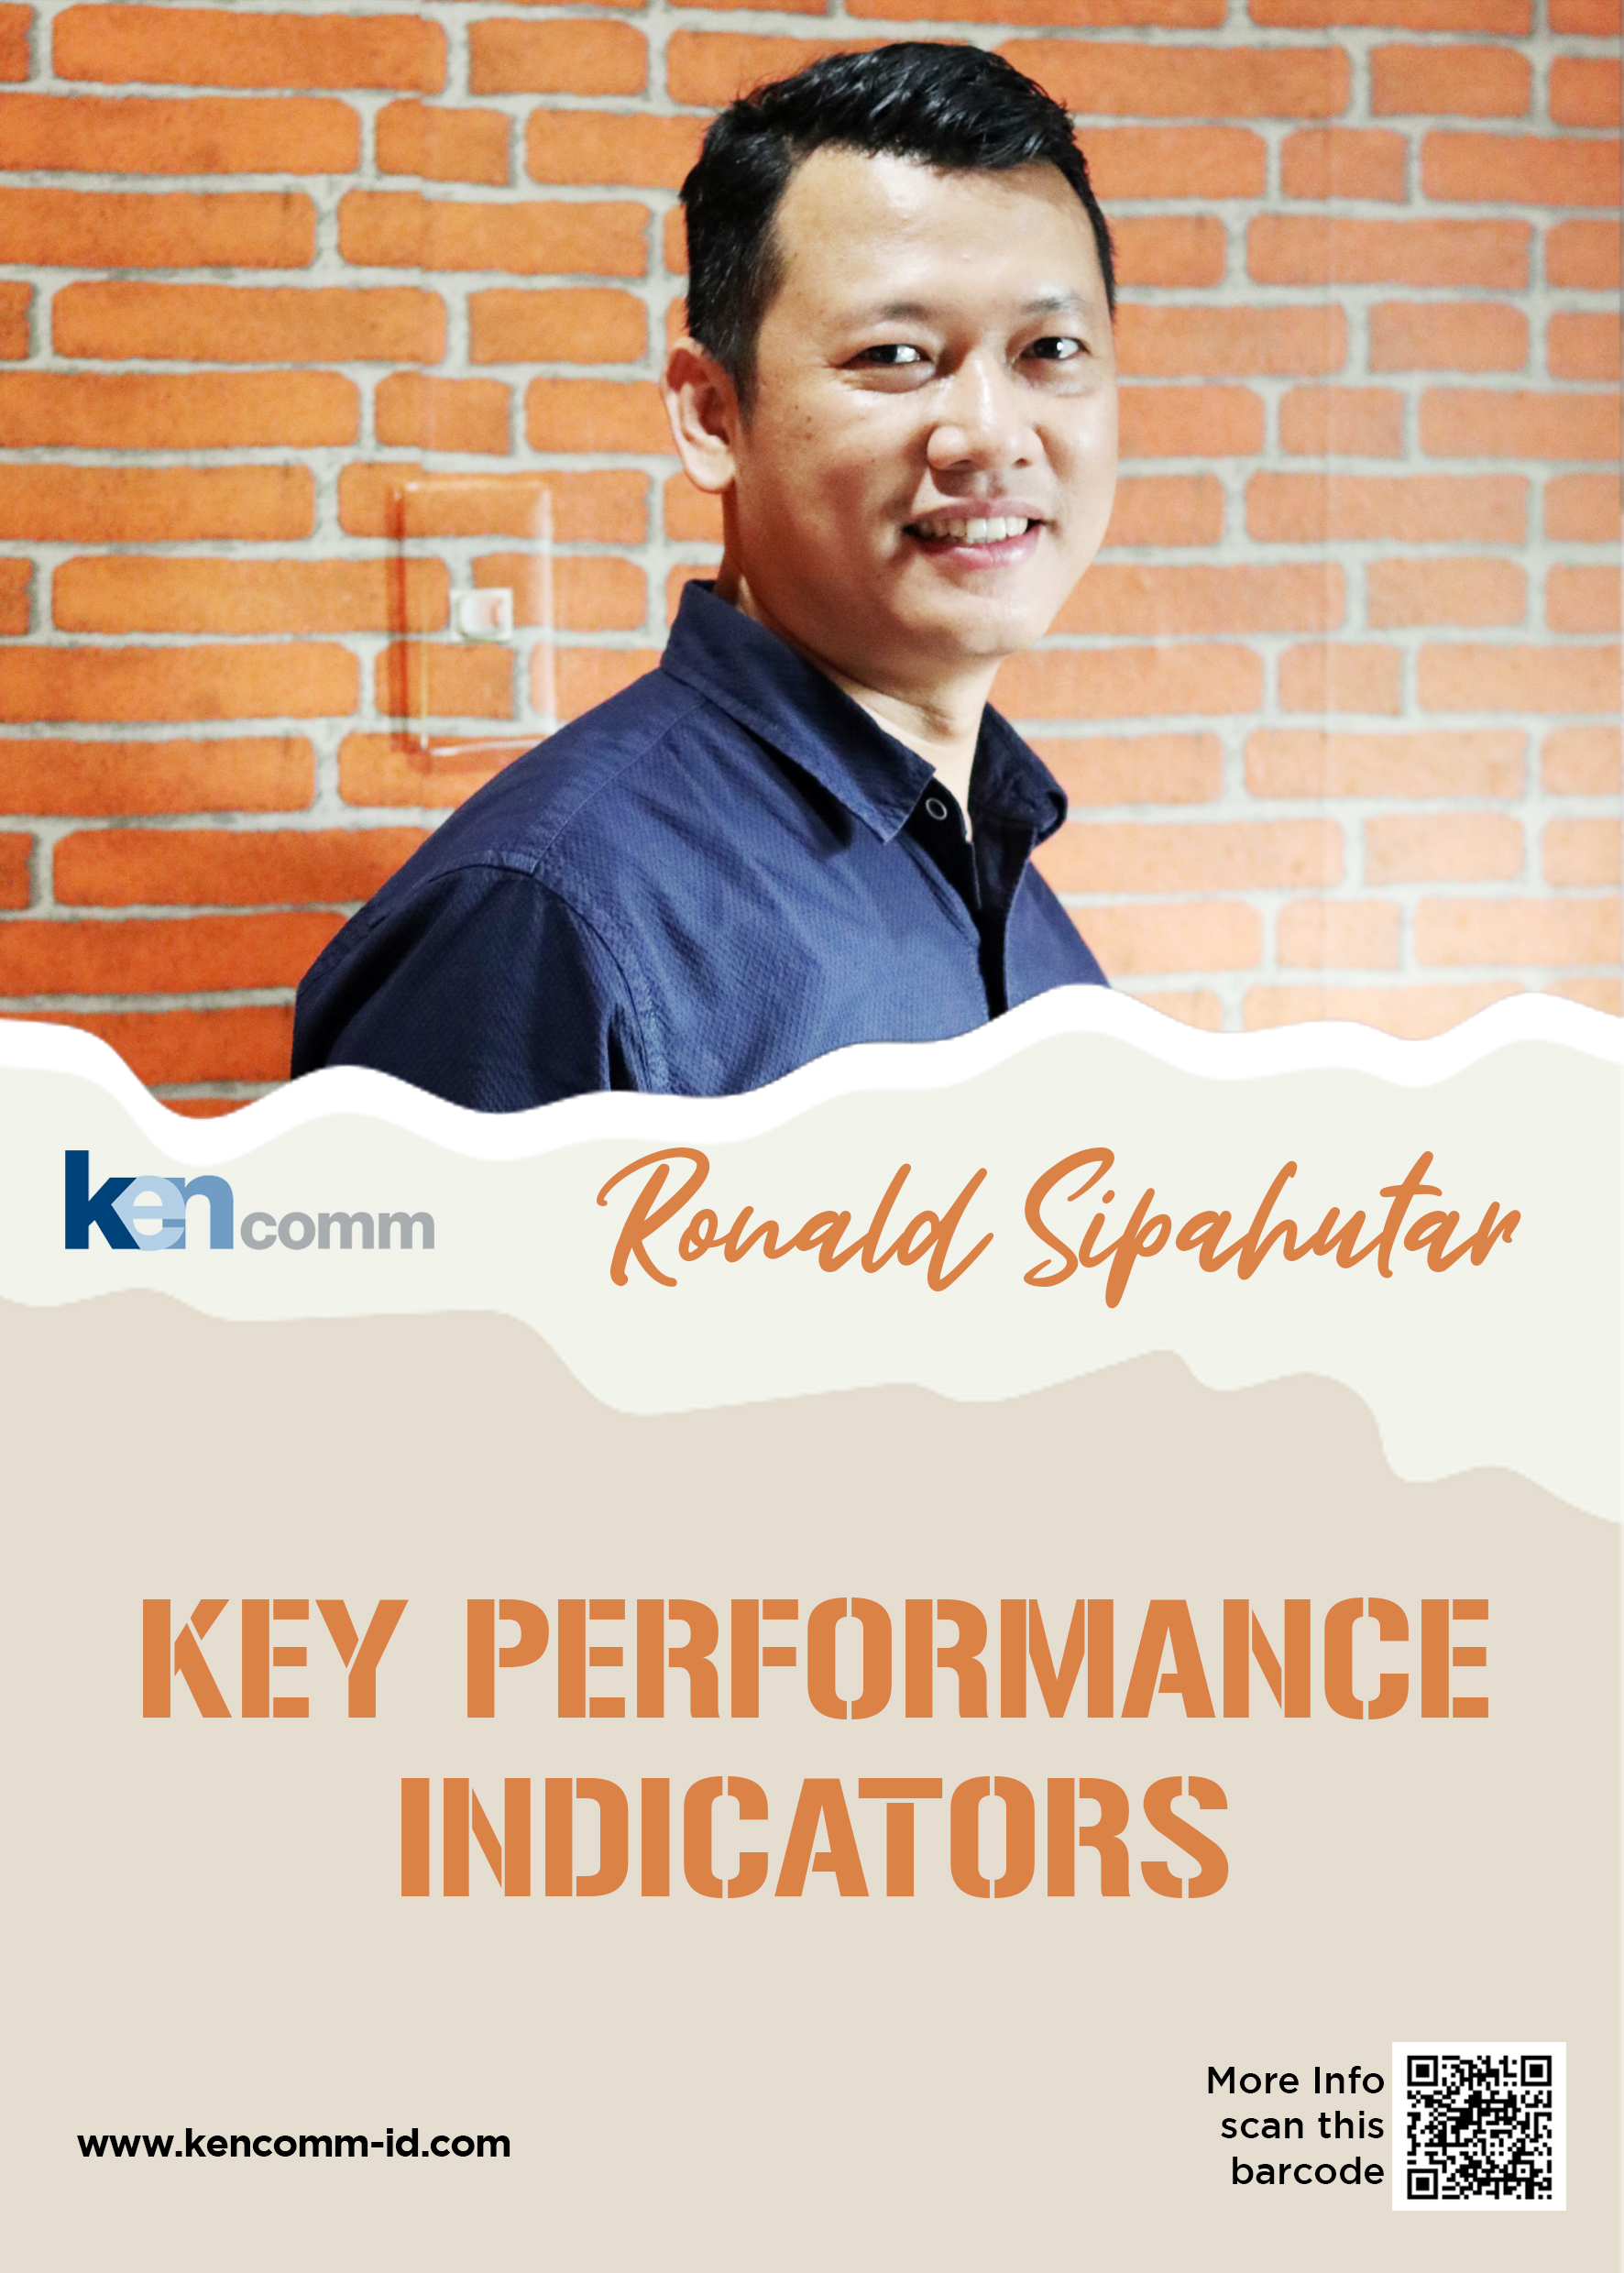 KEY PERFORMANCE INDICATORS-Ronald sipahutar